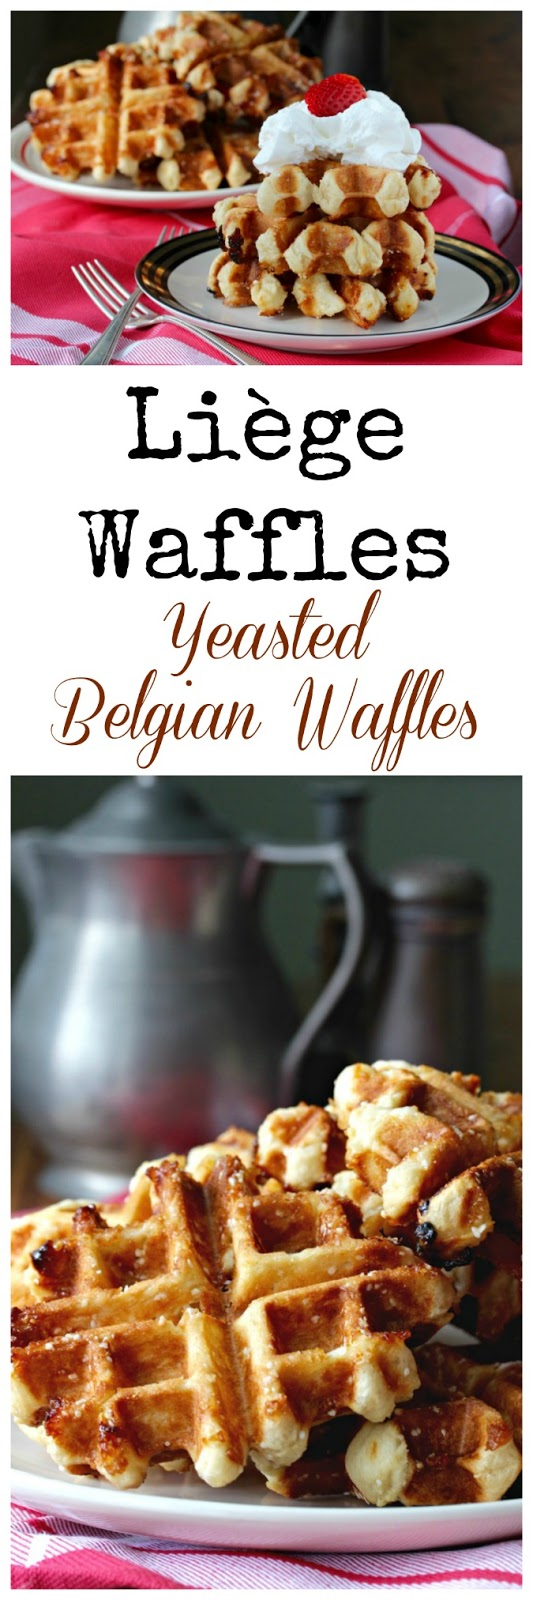 Liège Waffles are a sweet, chewy, butter, thick waffle make with brioche-like yeasted dough